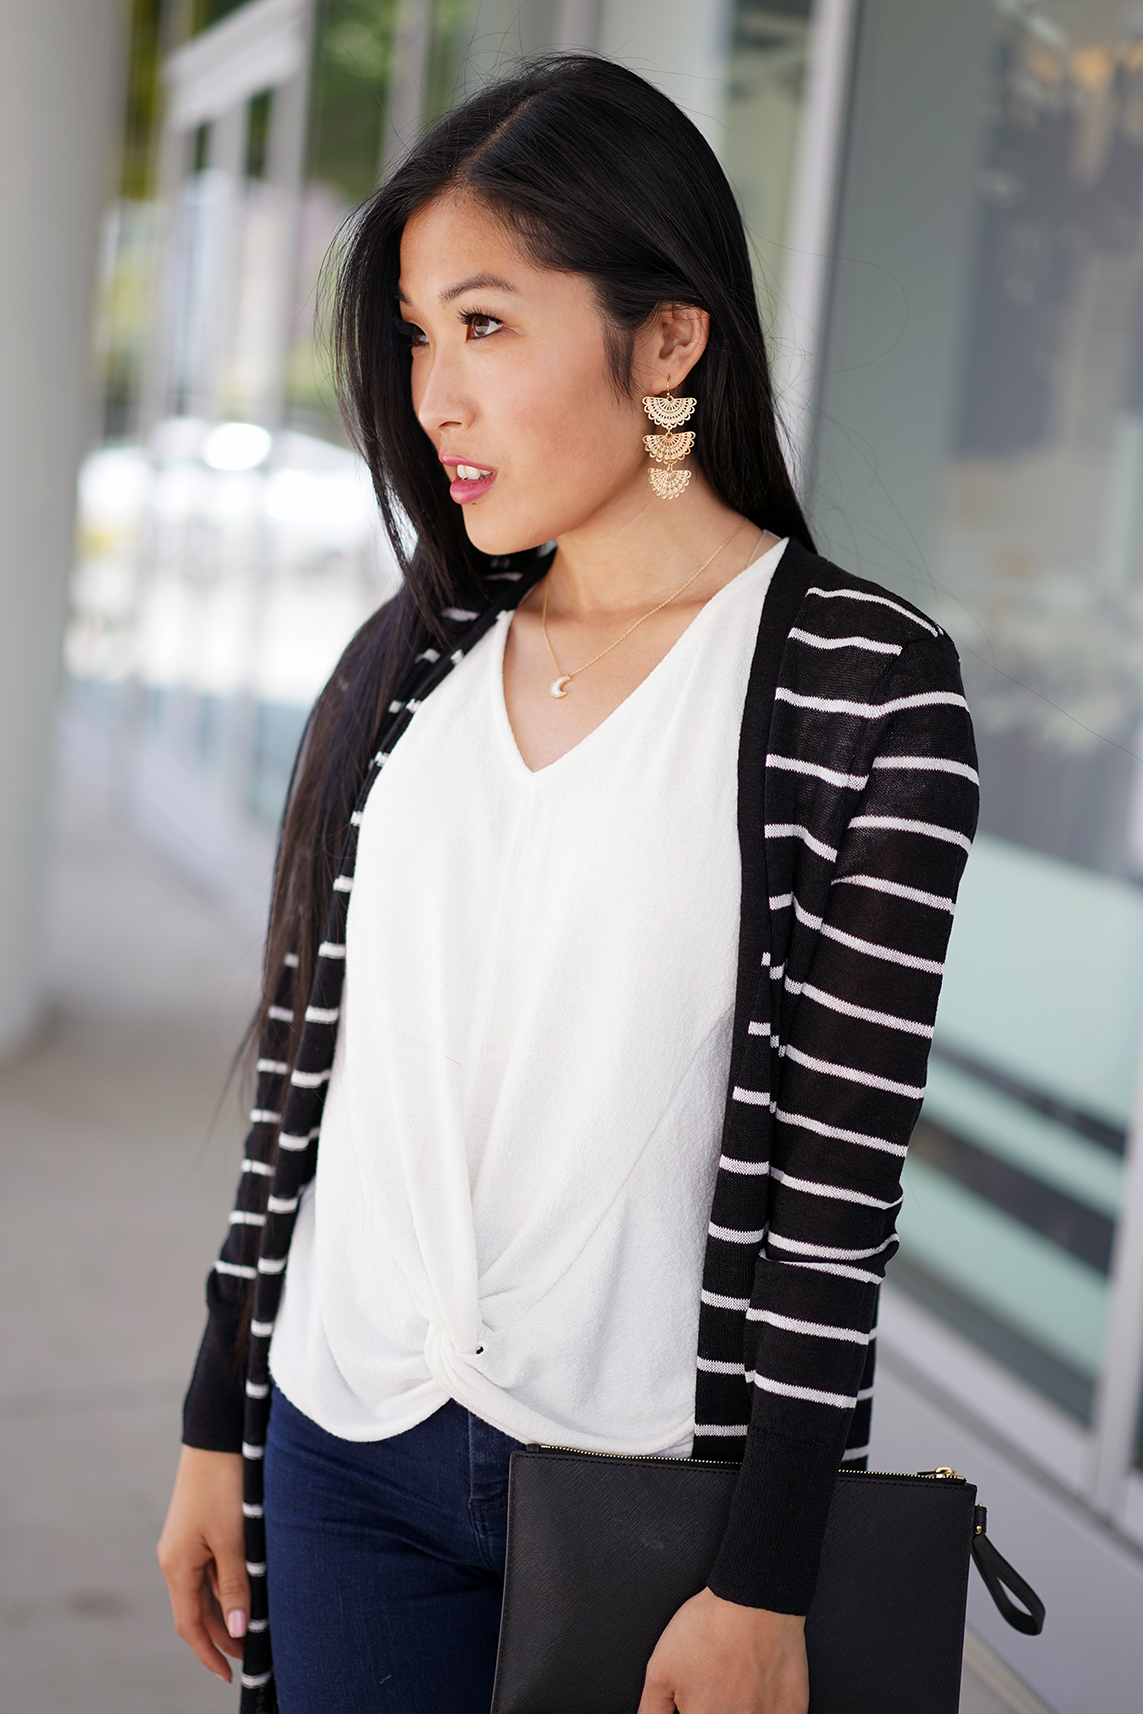 Halogen Long Linen Blend Cardigan with Black and Ivory Stripe Pattern and Giselle Fanned Linear Earrings from Francesaca's